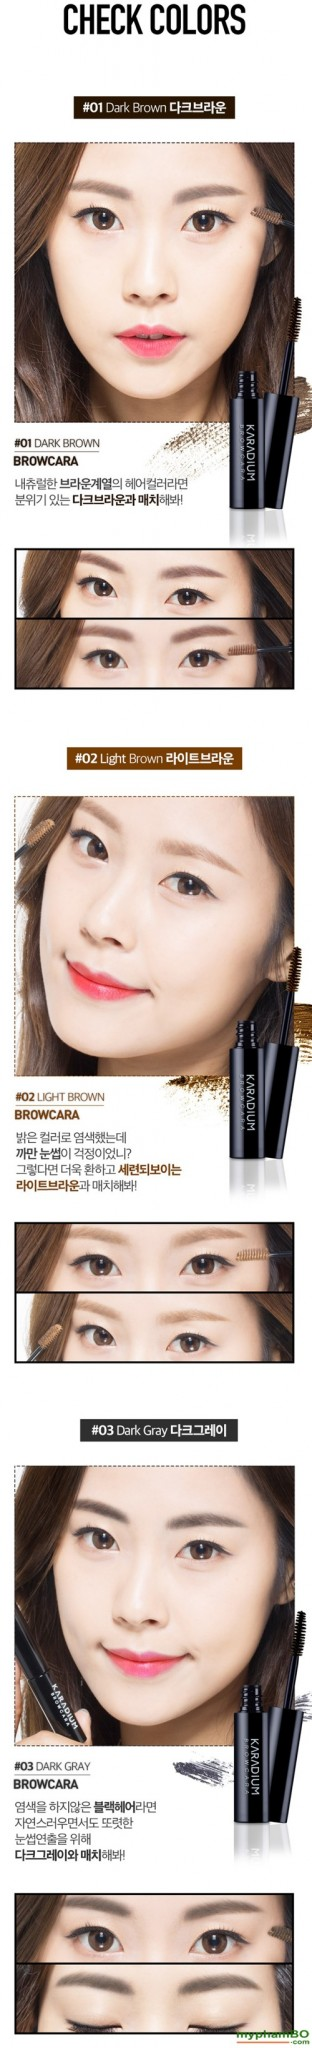 Mascara chan may Browcara Karadium (3)